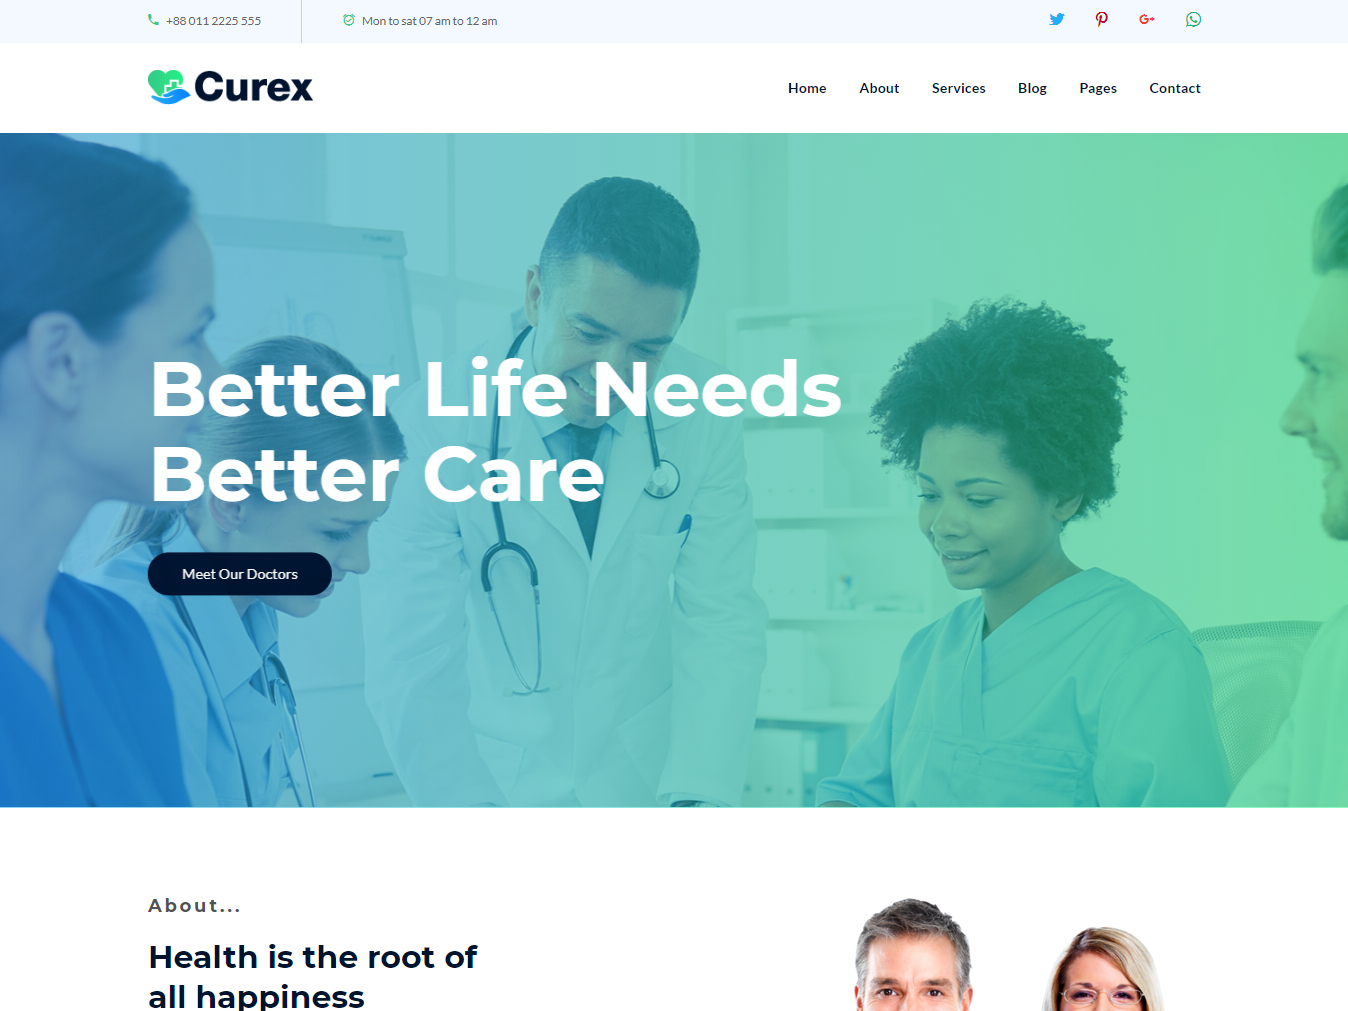 Curex - Medical Clinic Service HTML Template by HasTech on Dribbble